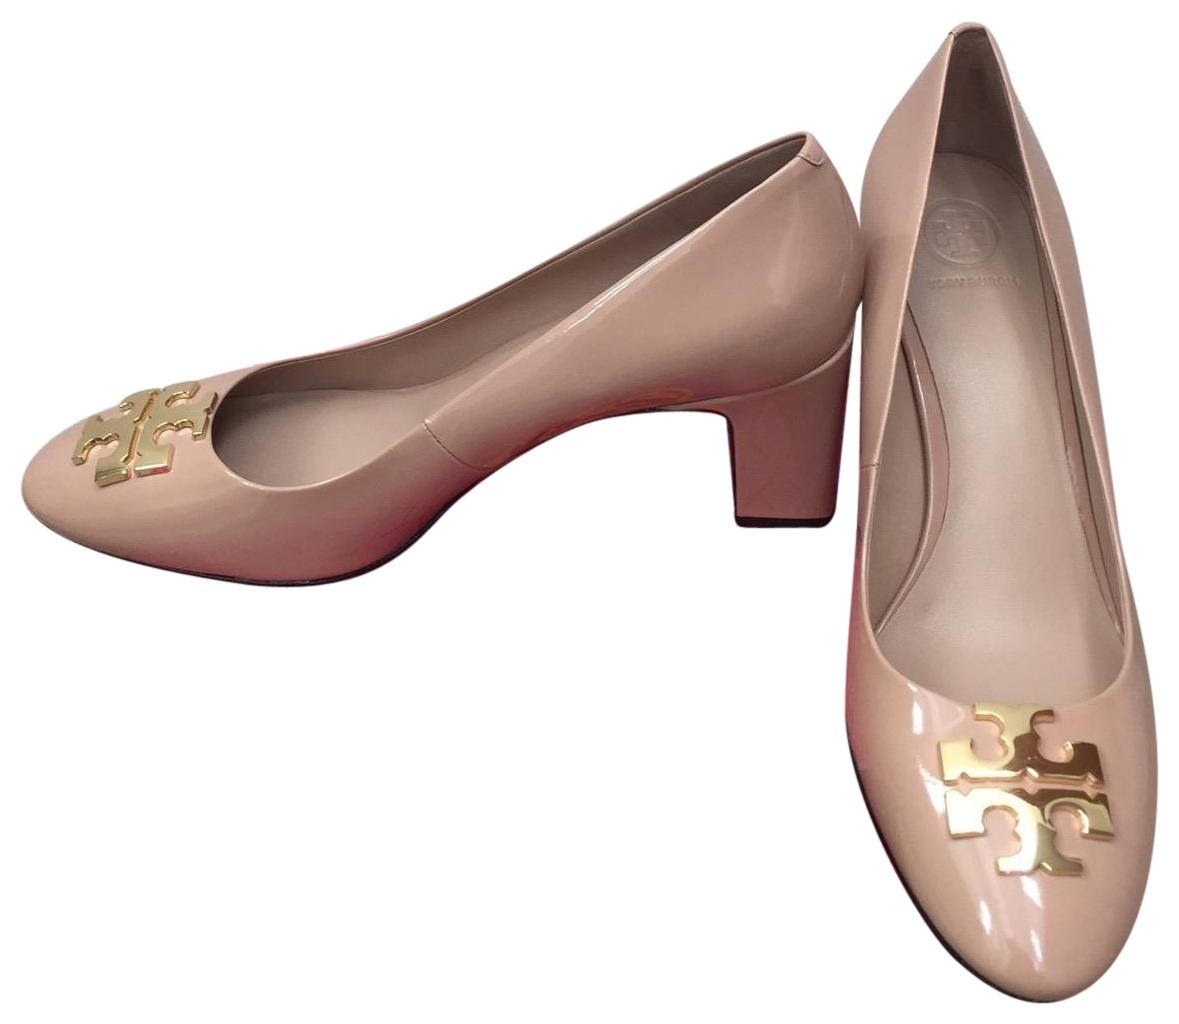 a5cec40730f Tory Burch Beige 8.5m   Raleigh Raleigh Raleigh   70mm Patent Leather Pumps Size  US